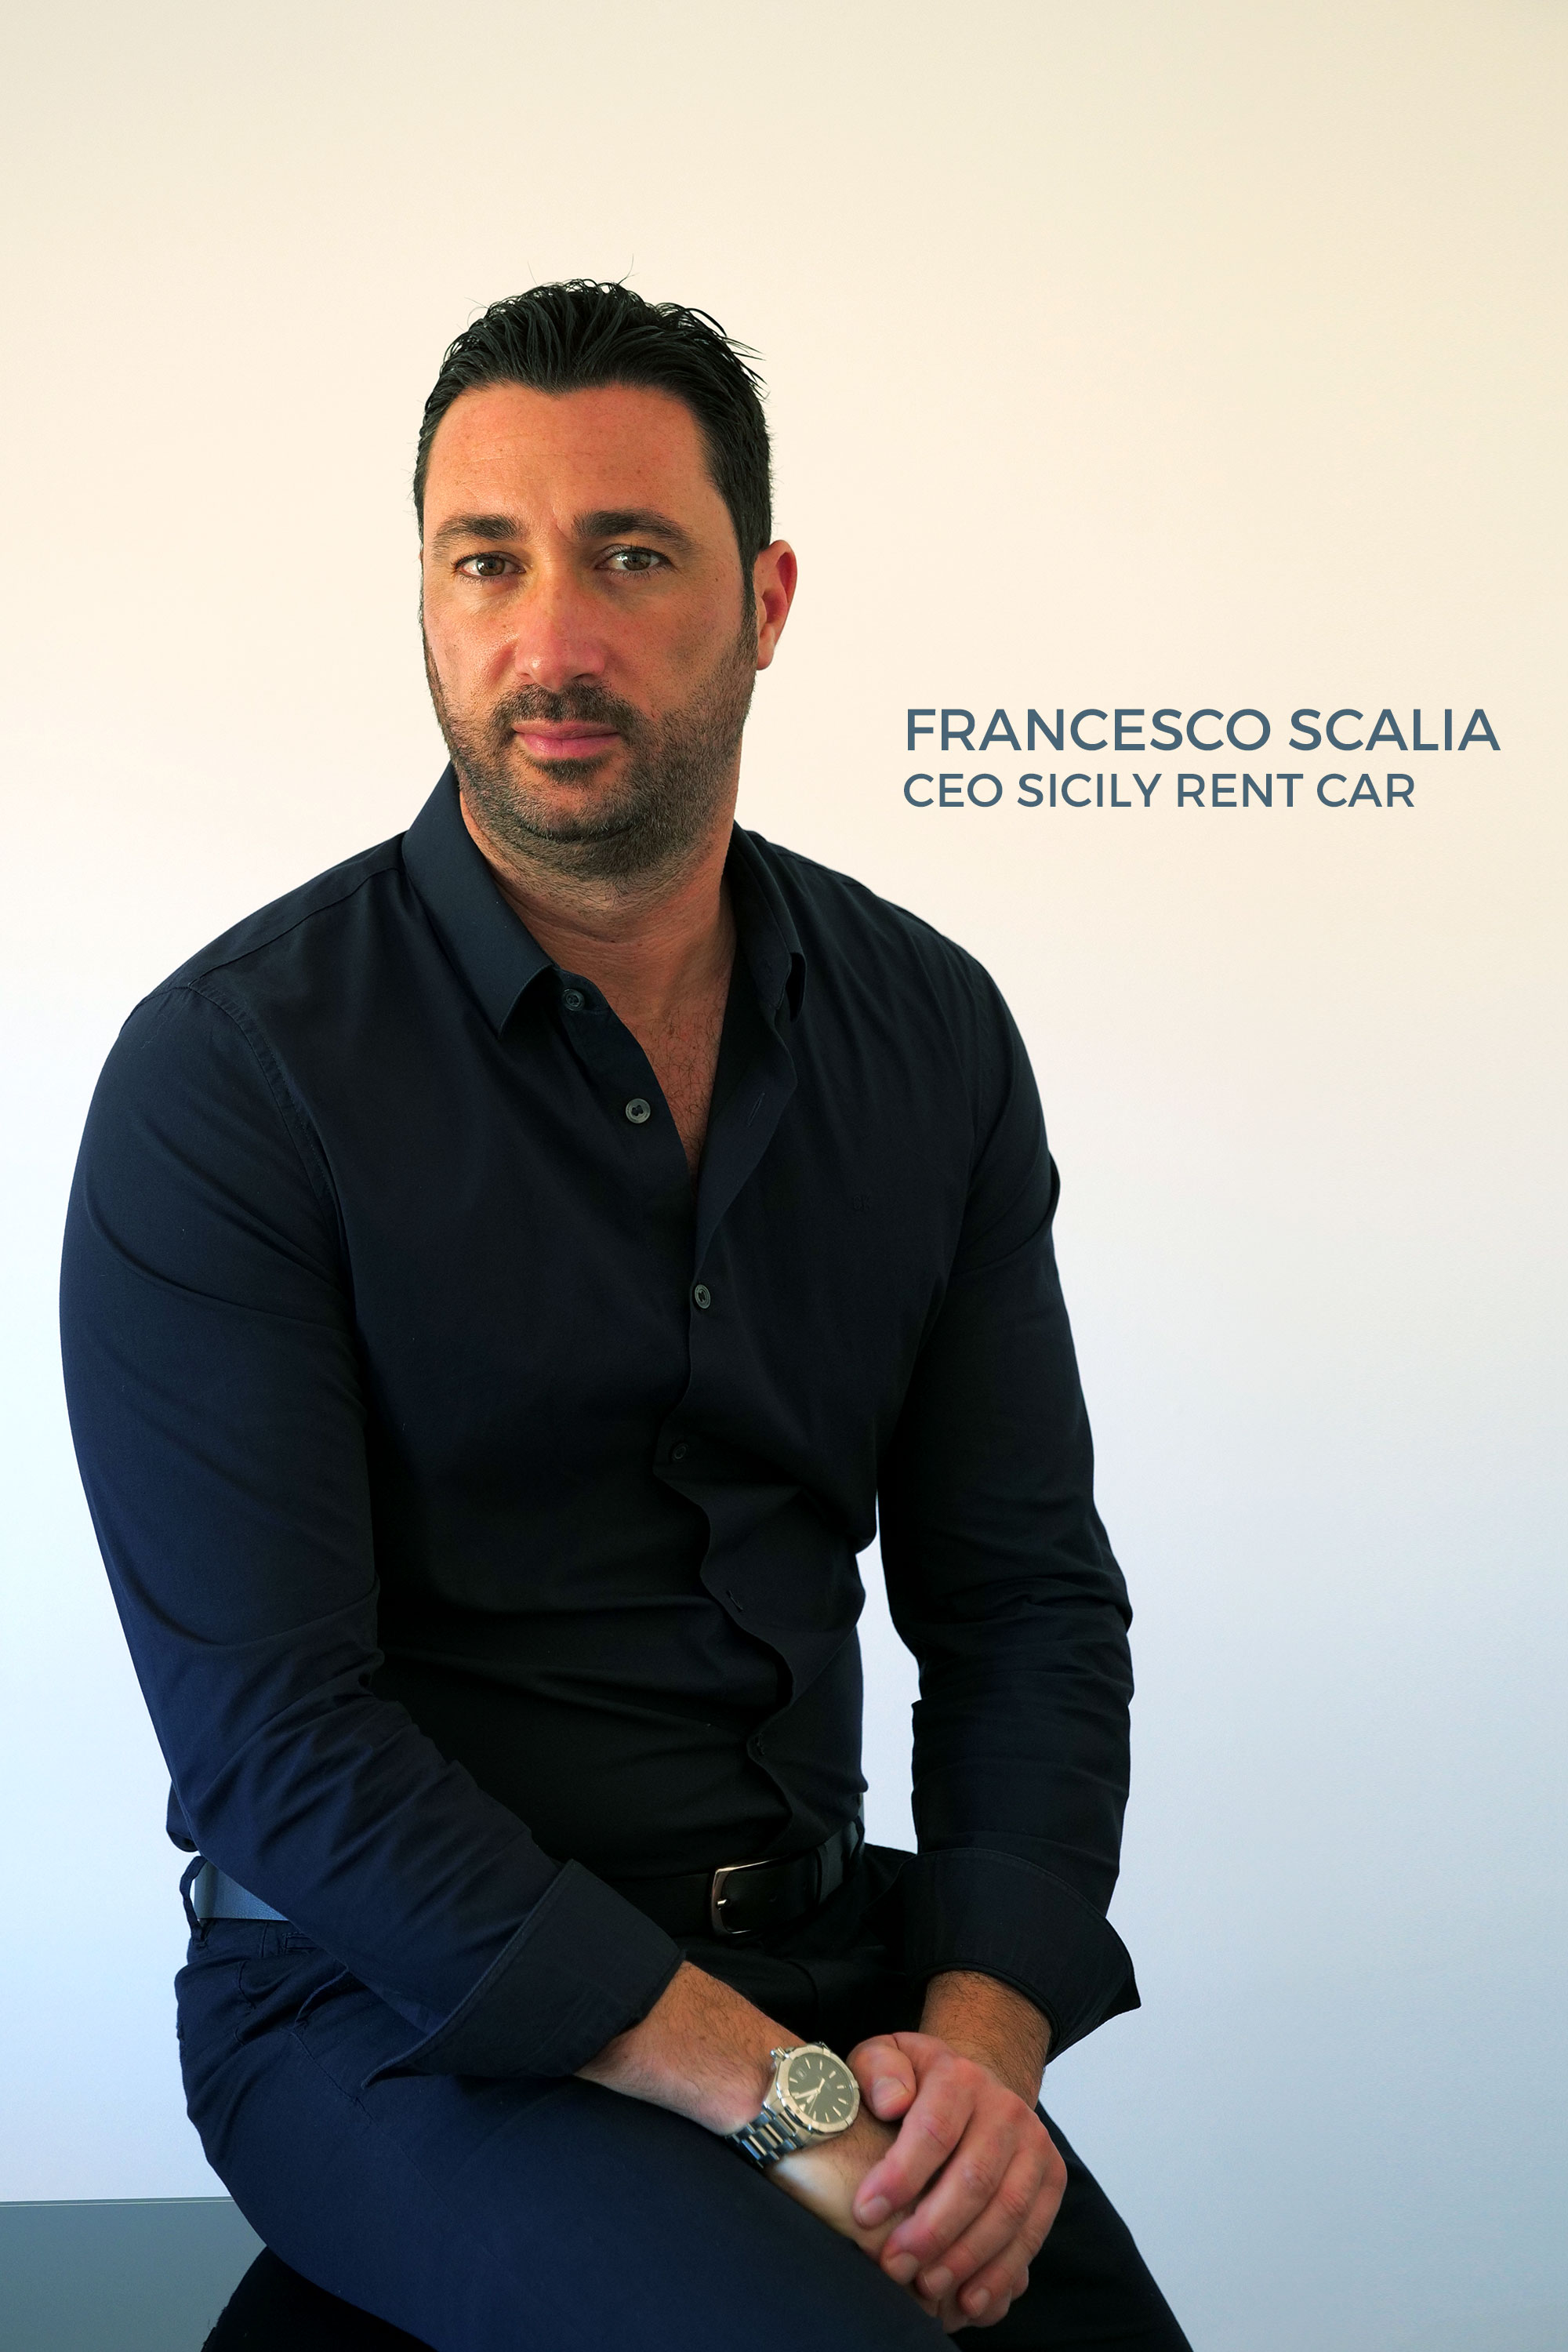 Francesco Scalia CEO Sicily Rent Car